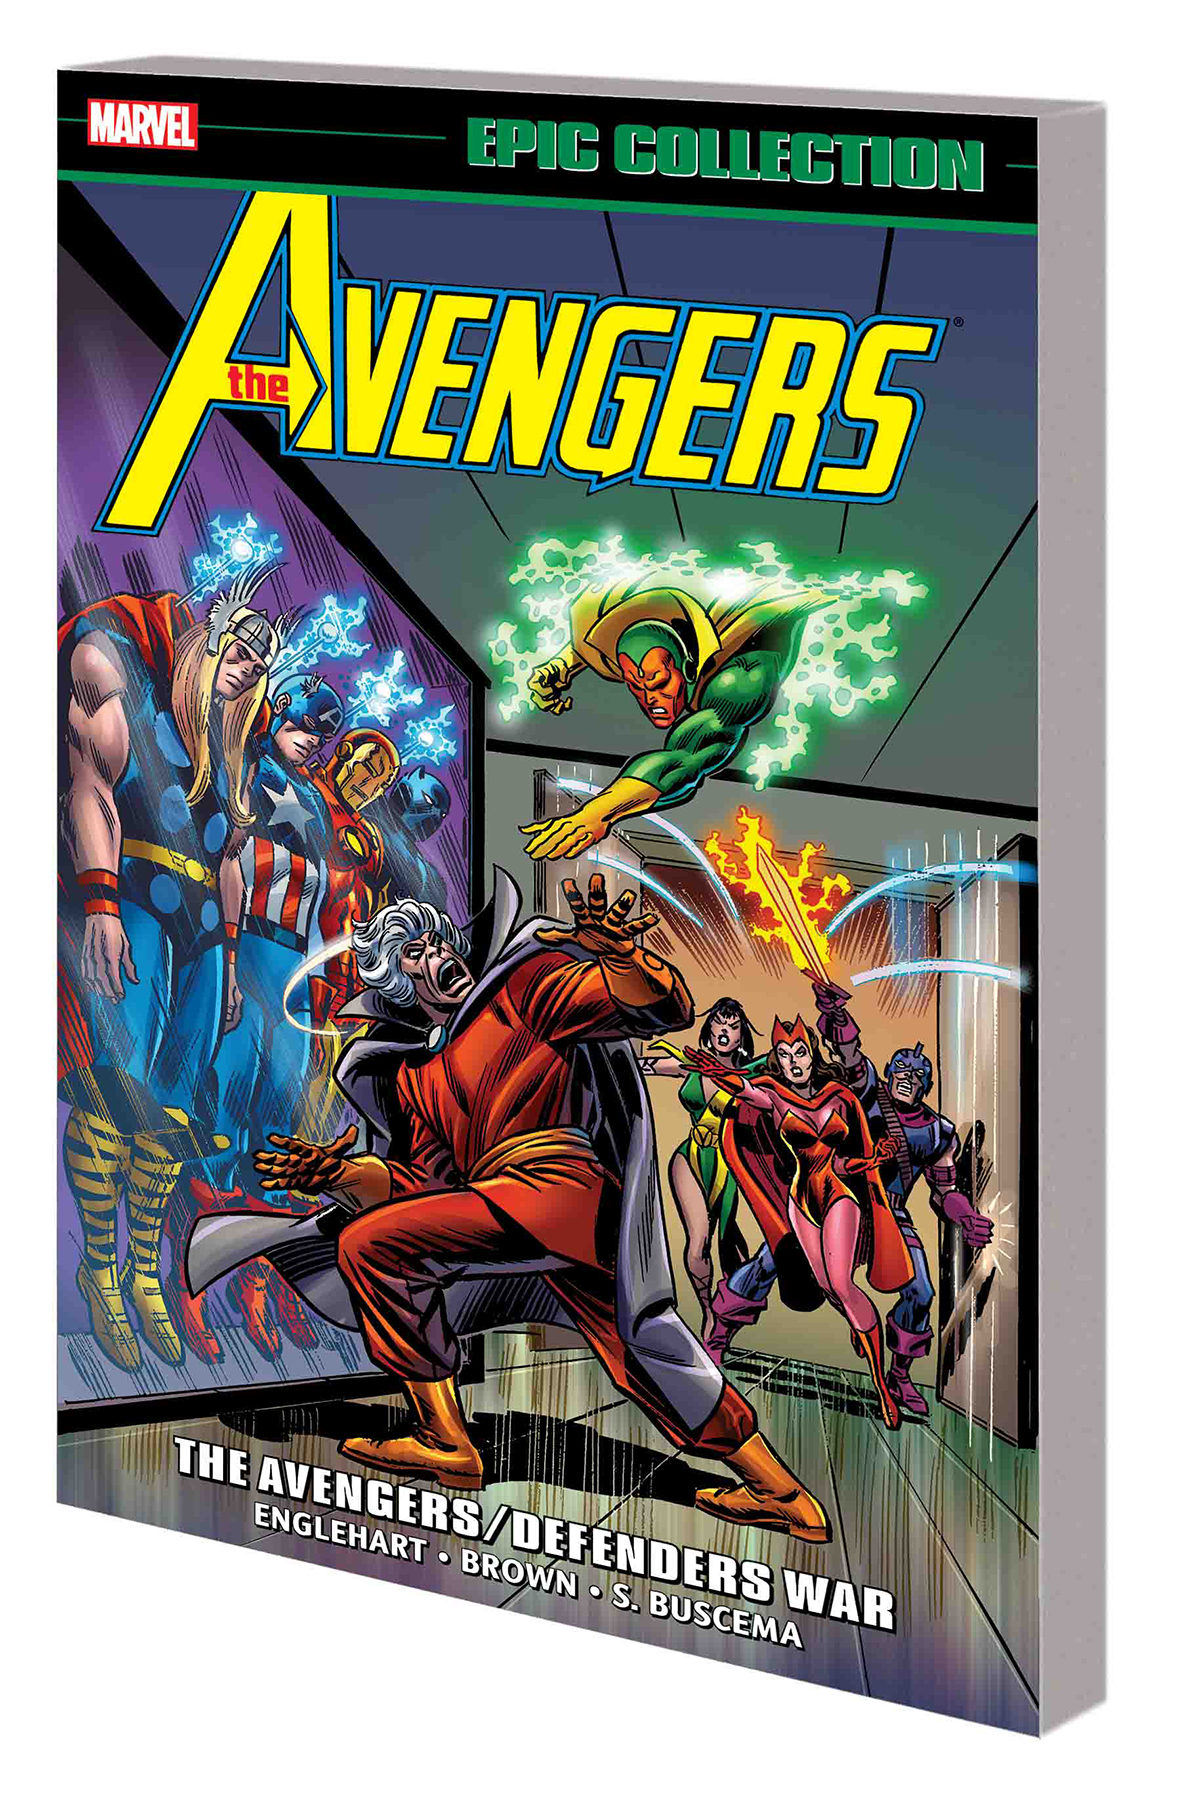 Avengers Epic Collection: The Avengers/Defenders War review: Classic storytelling and Saturday-morning fun make this a fantastic entry in the line